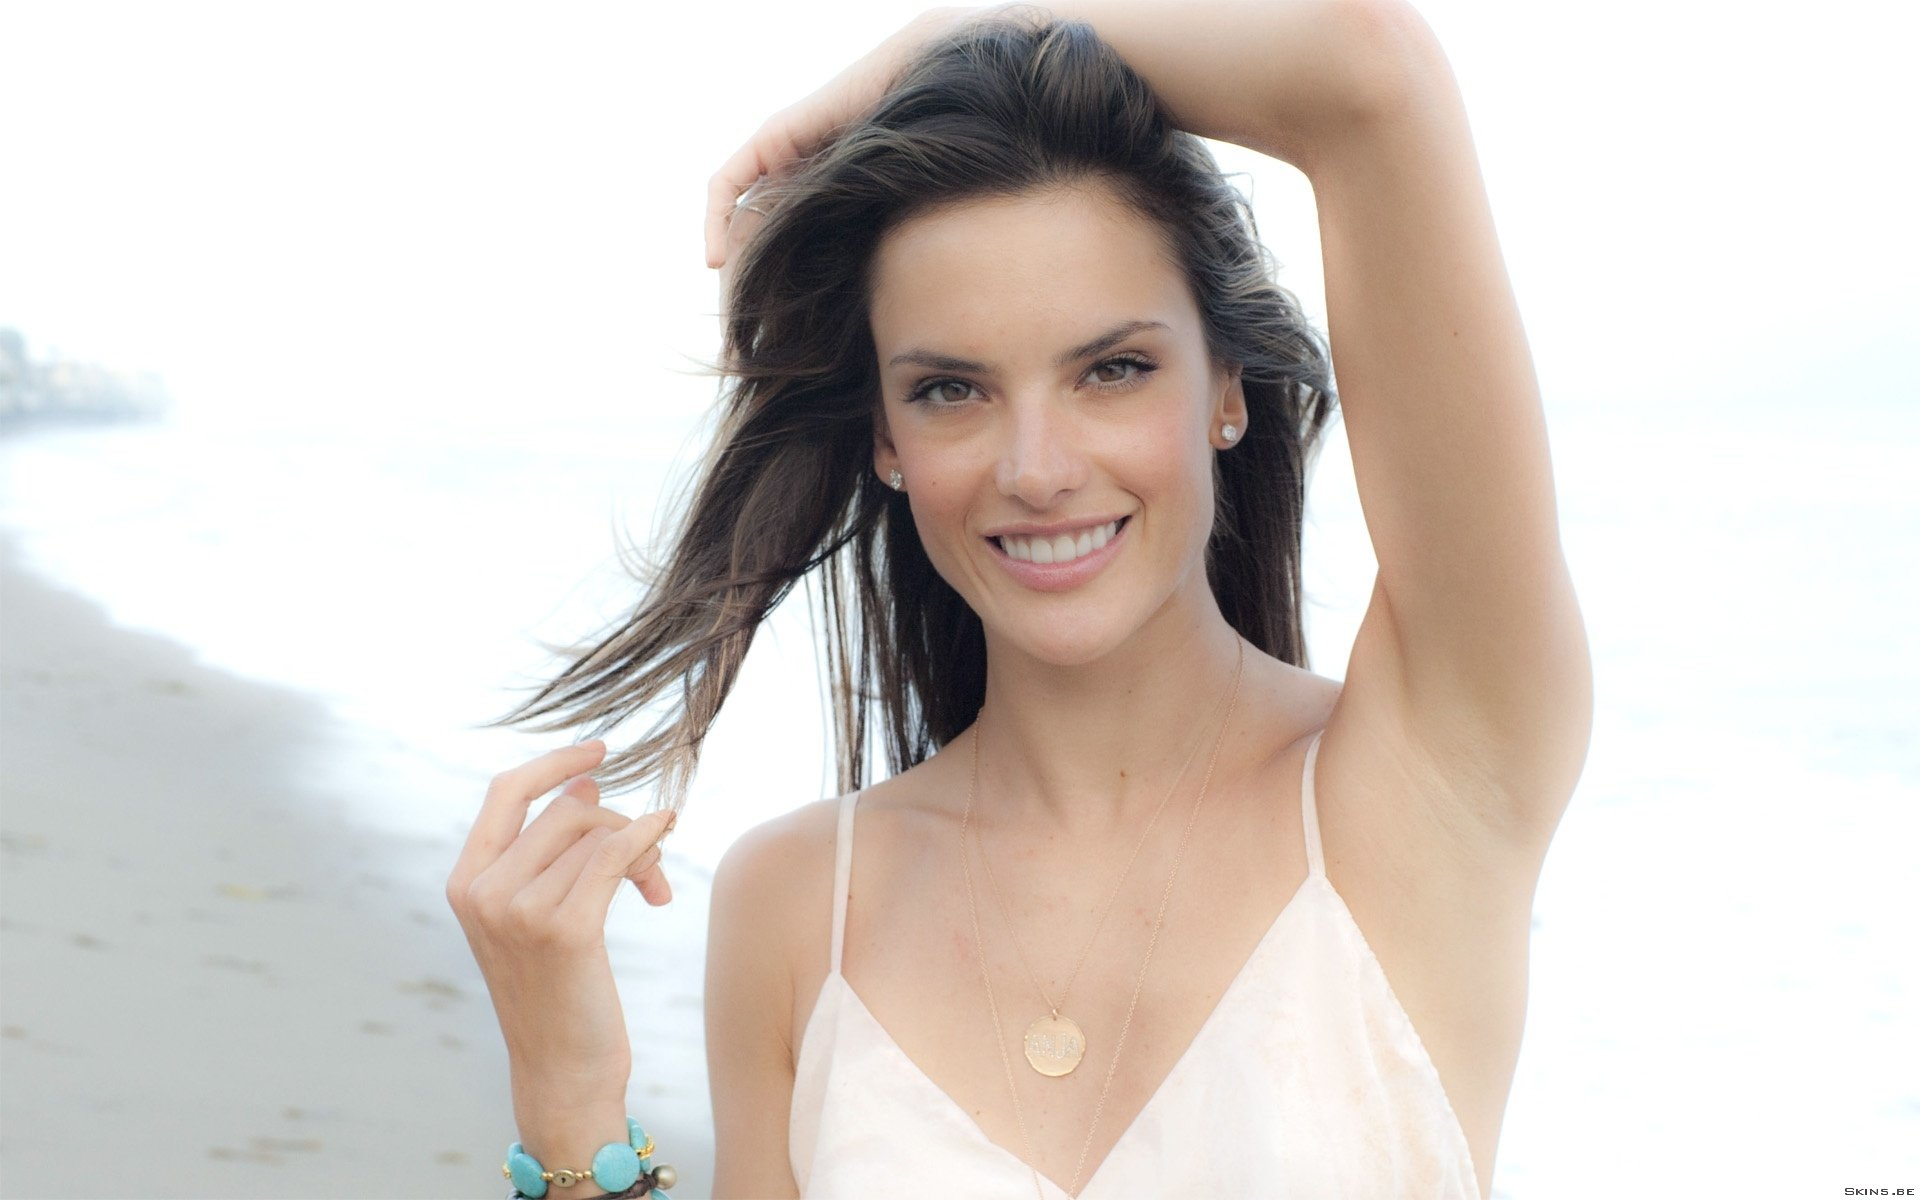 alessandra ambrosio wallpapers - photo #26